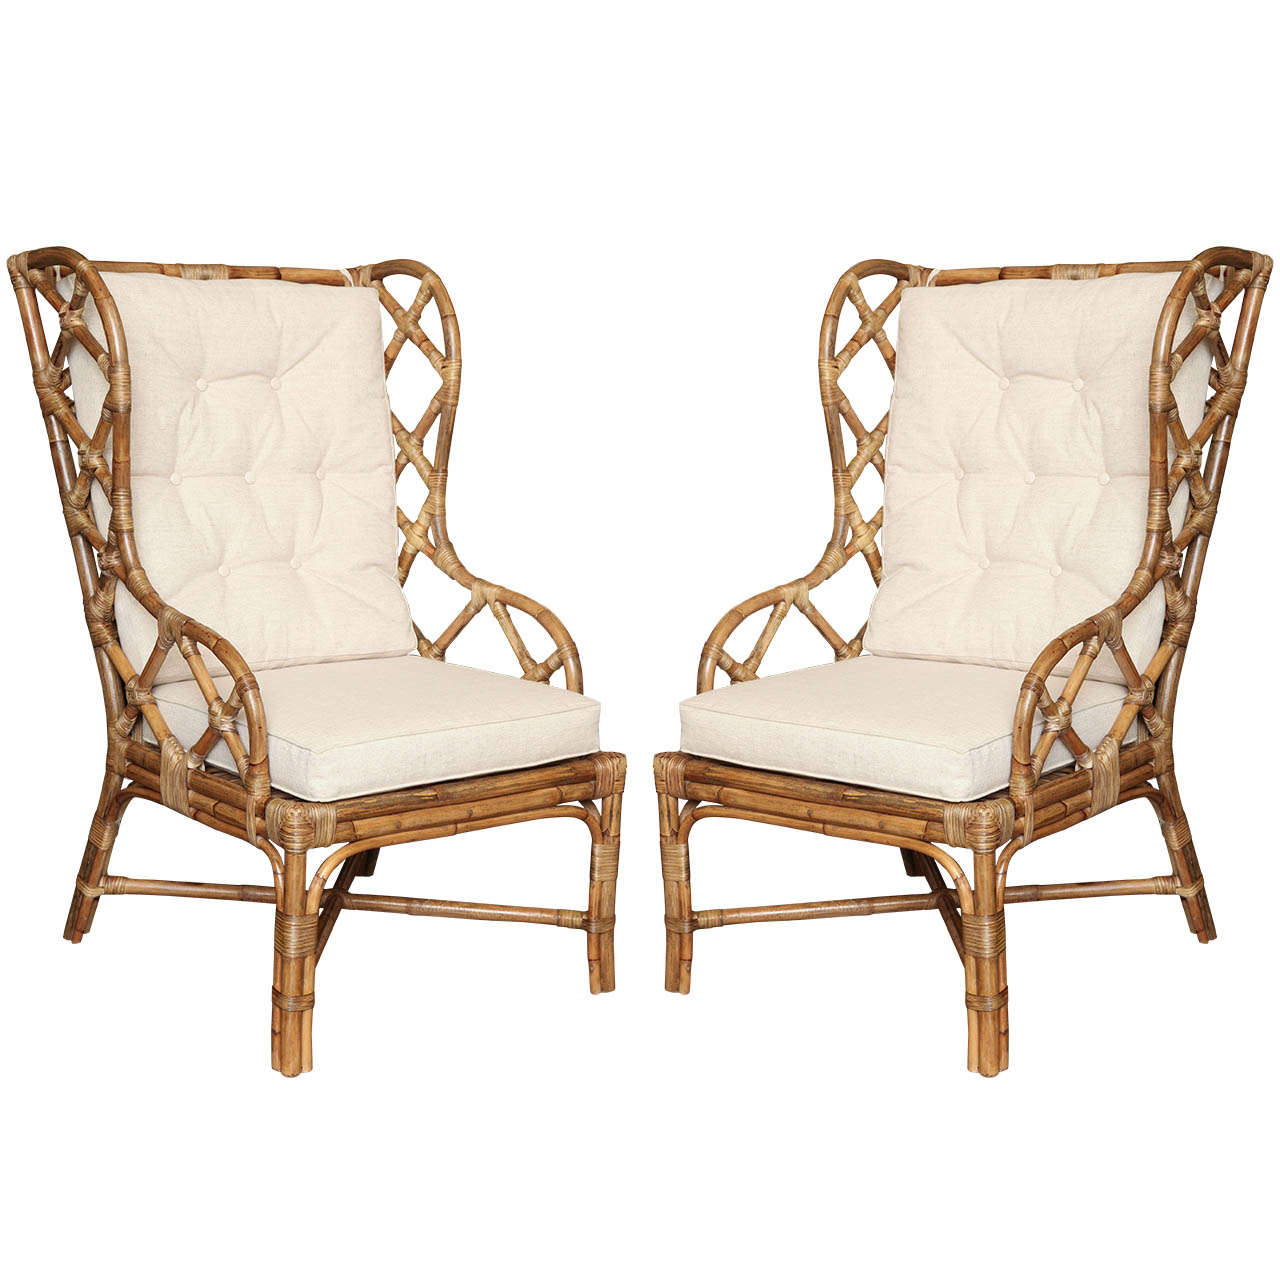 Pair Rattan Wingback Chairs c 1960 at 1stdibs